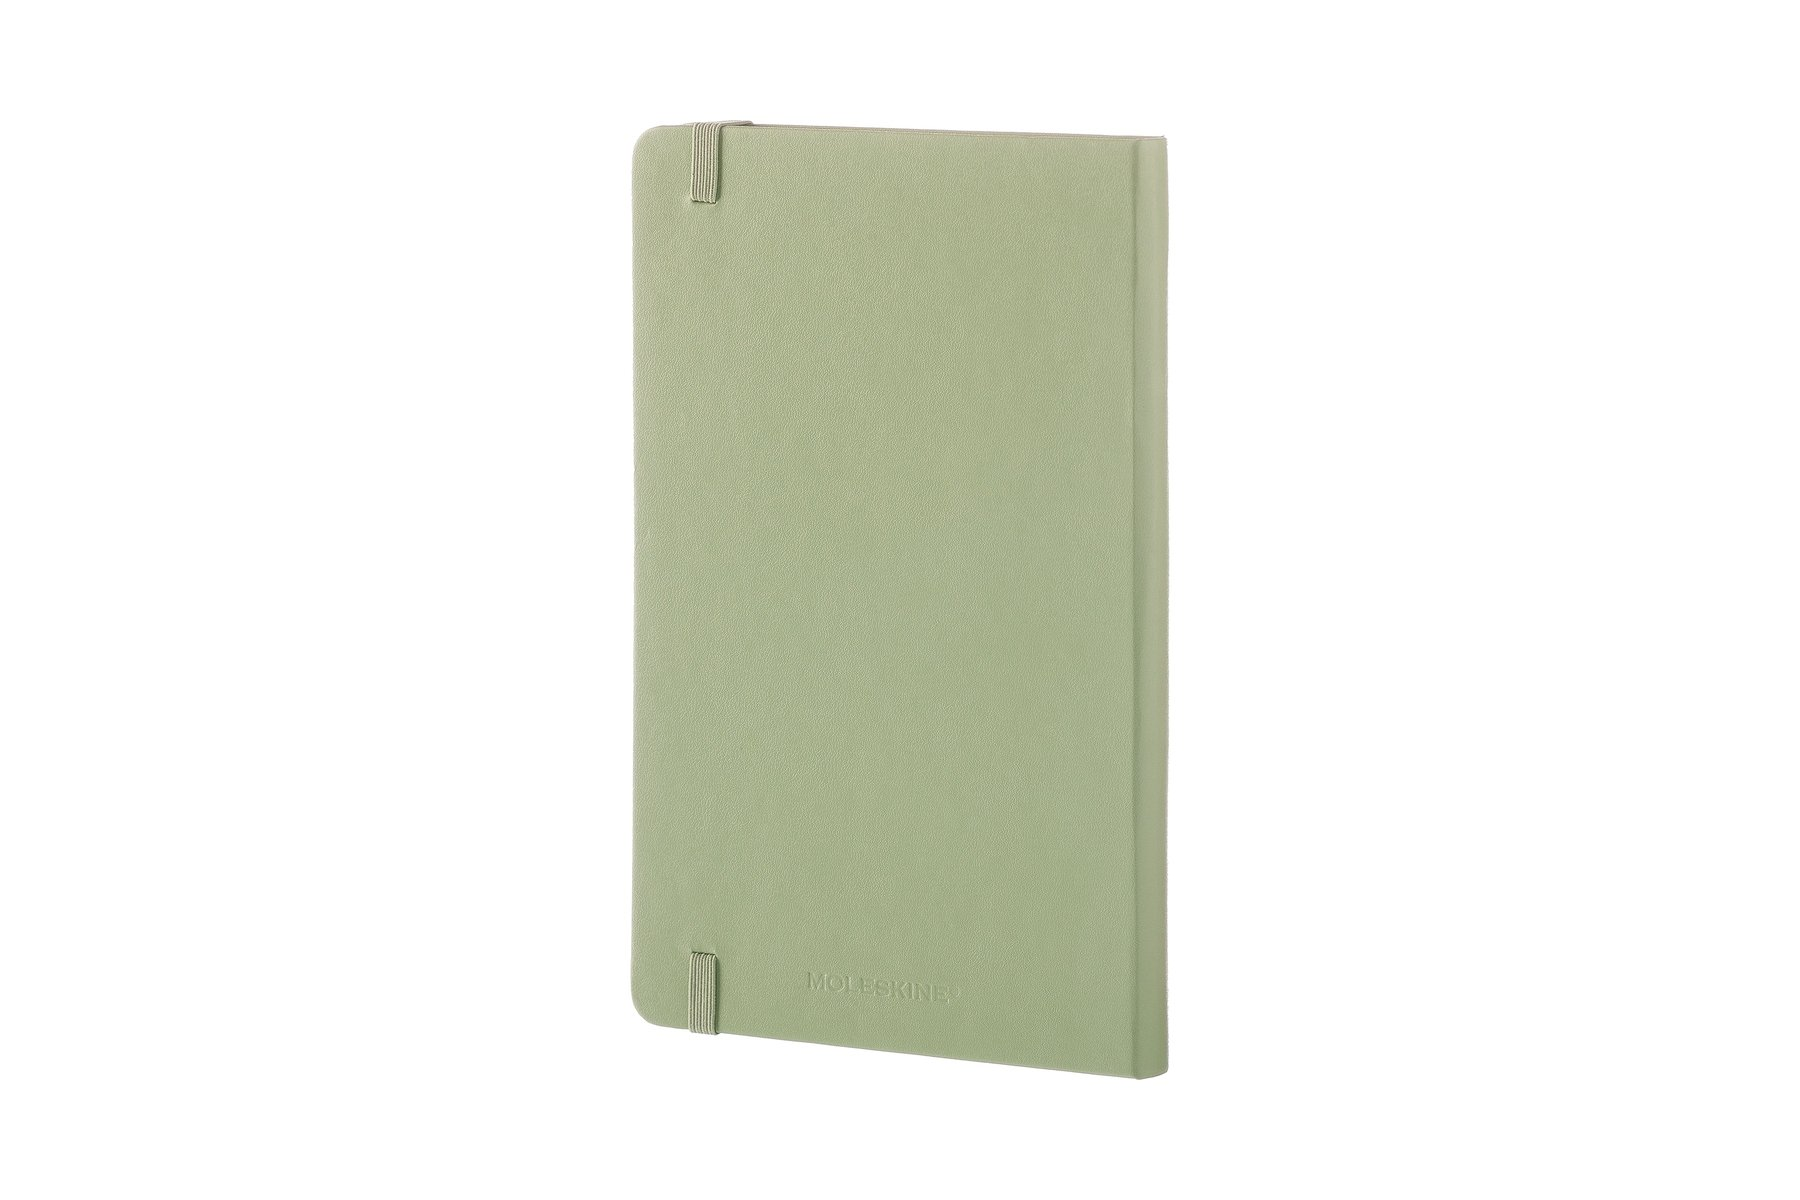 Moleskine Classic Notebook, Large, Ruled, Willow Green, Hard Cover (5 x 8.25) by Moleskine (Image #8)